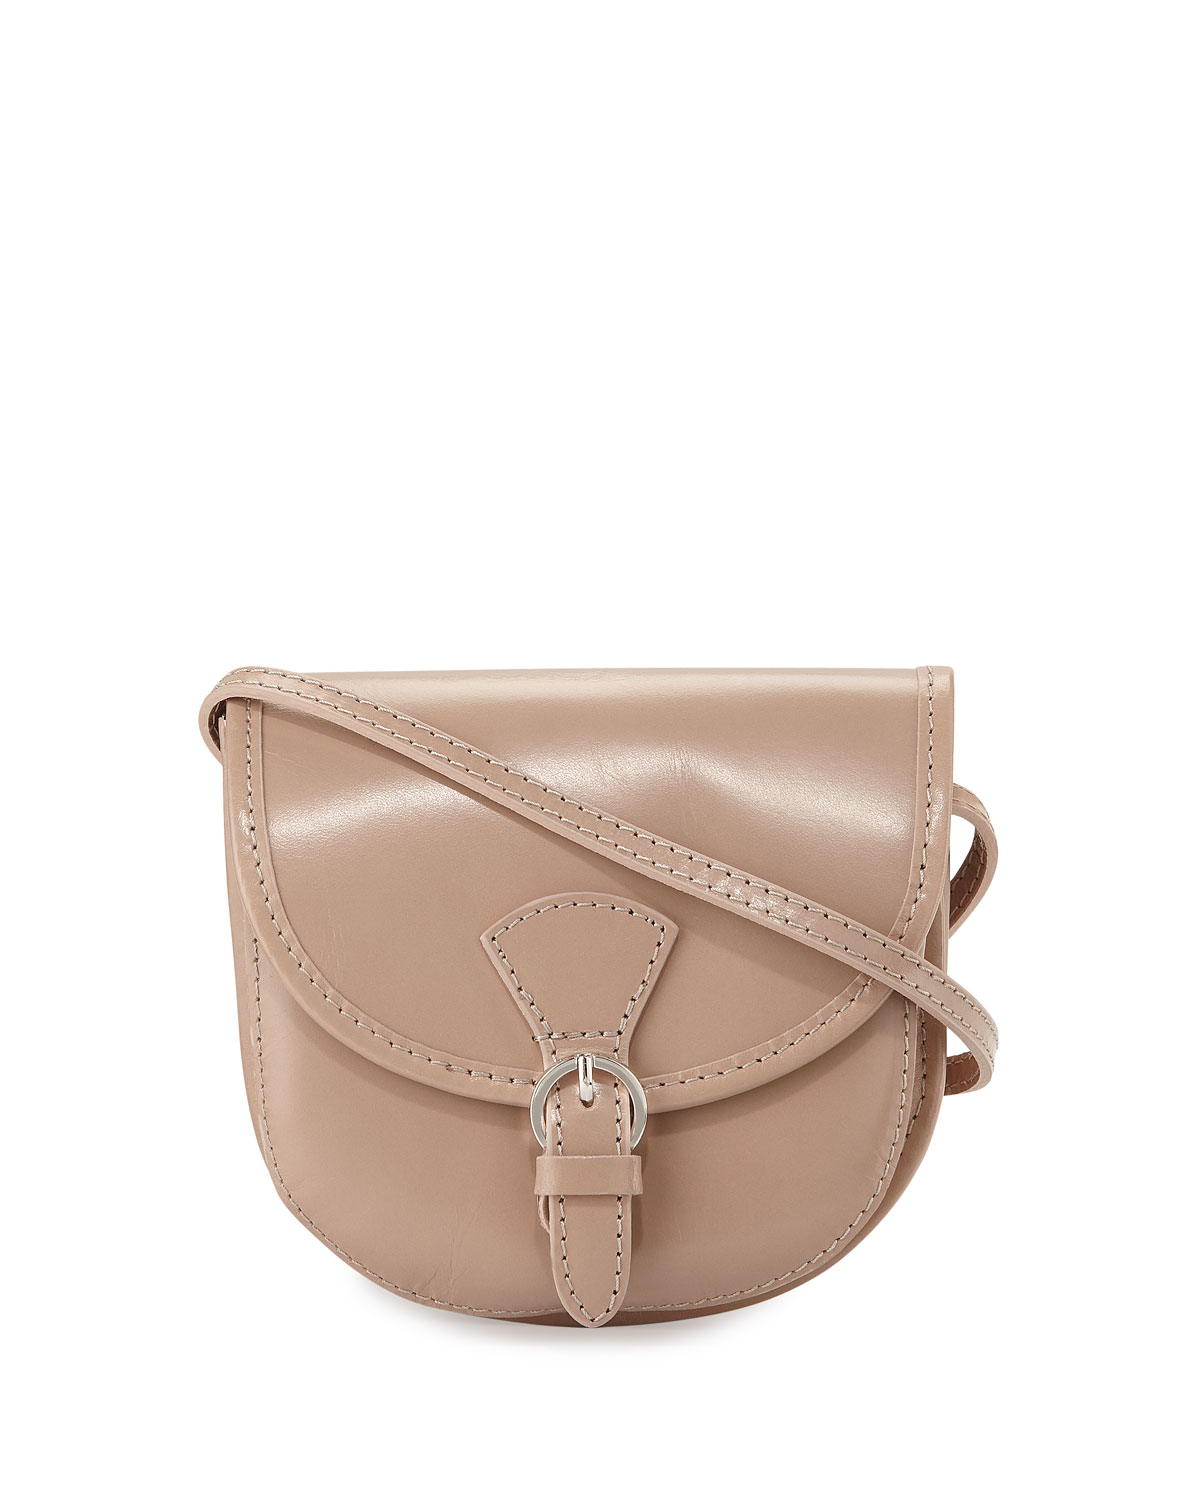 Lyst - Neiman Marcus Buckle Leather Saddle Bag in Natural 650bddce6a